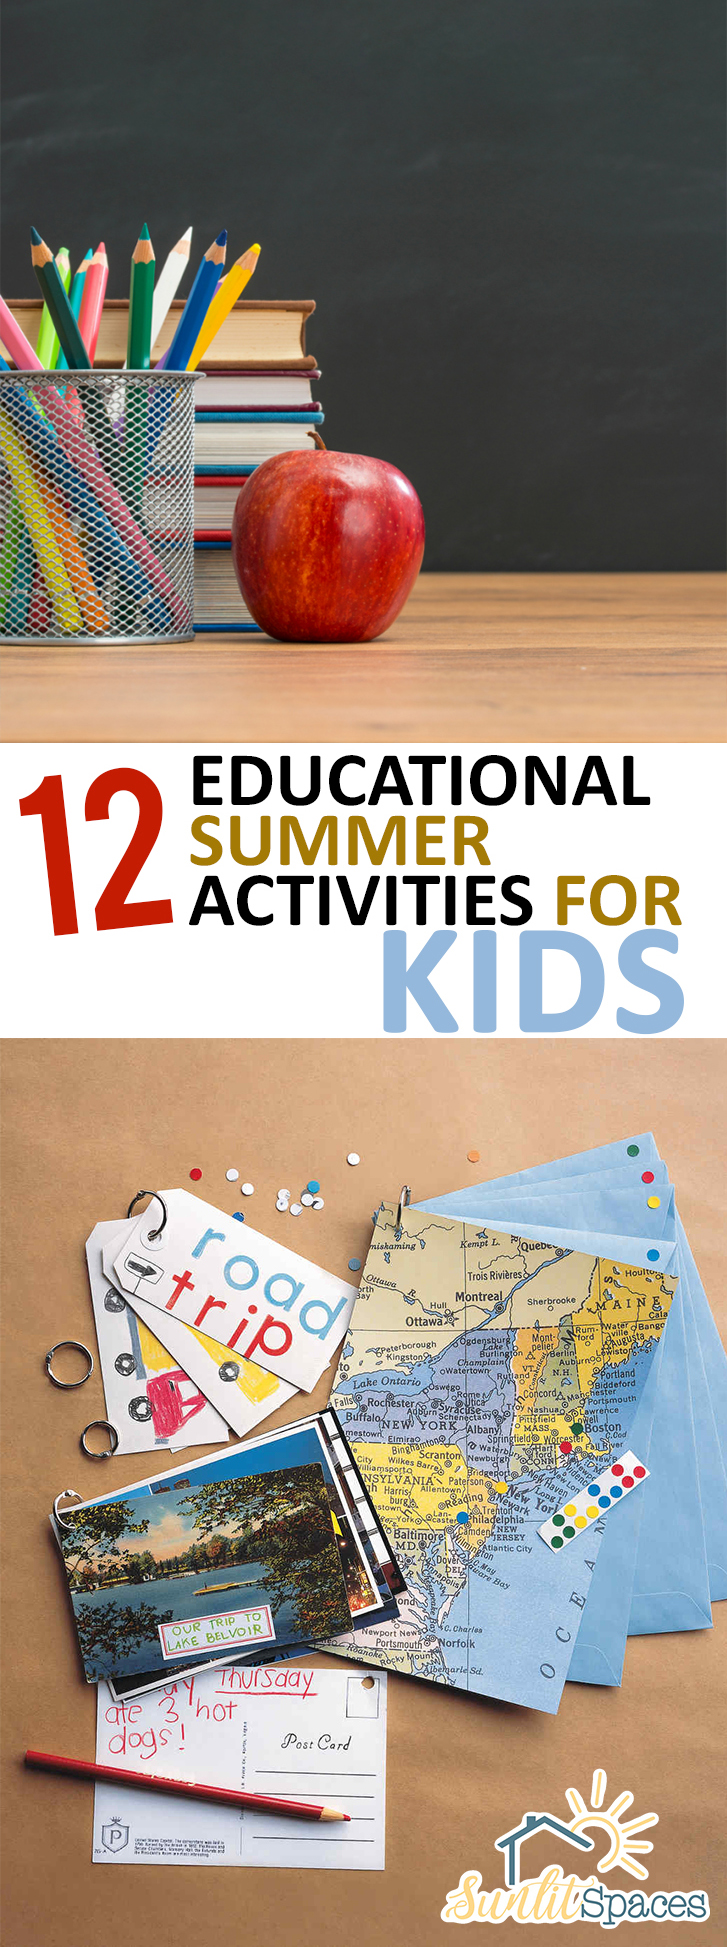 12 Educational Summer Activities for Kids